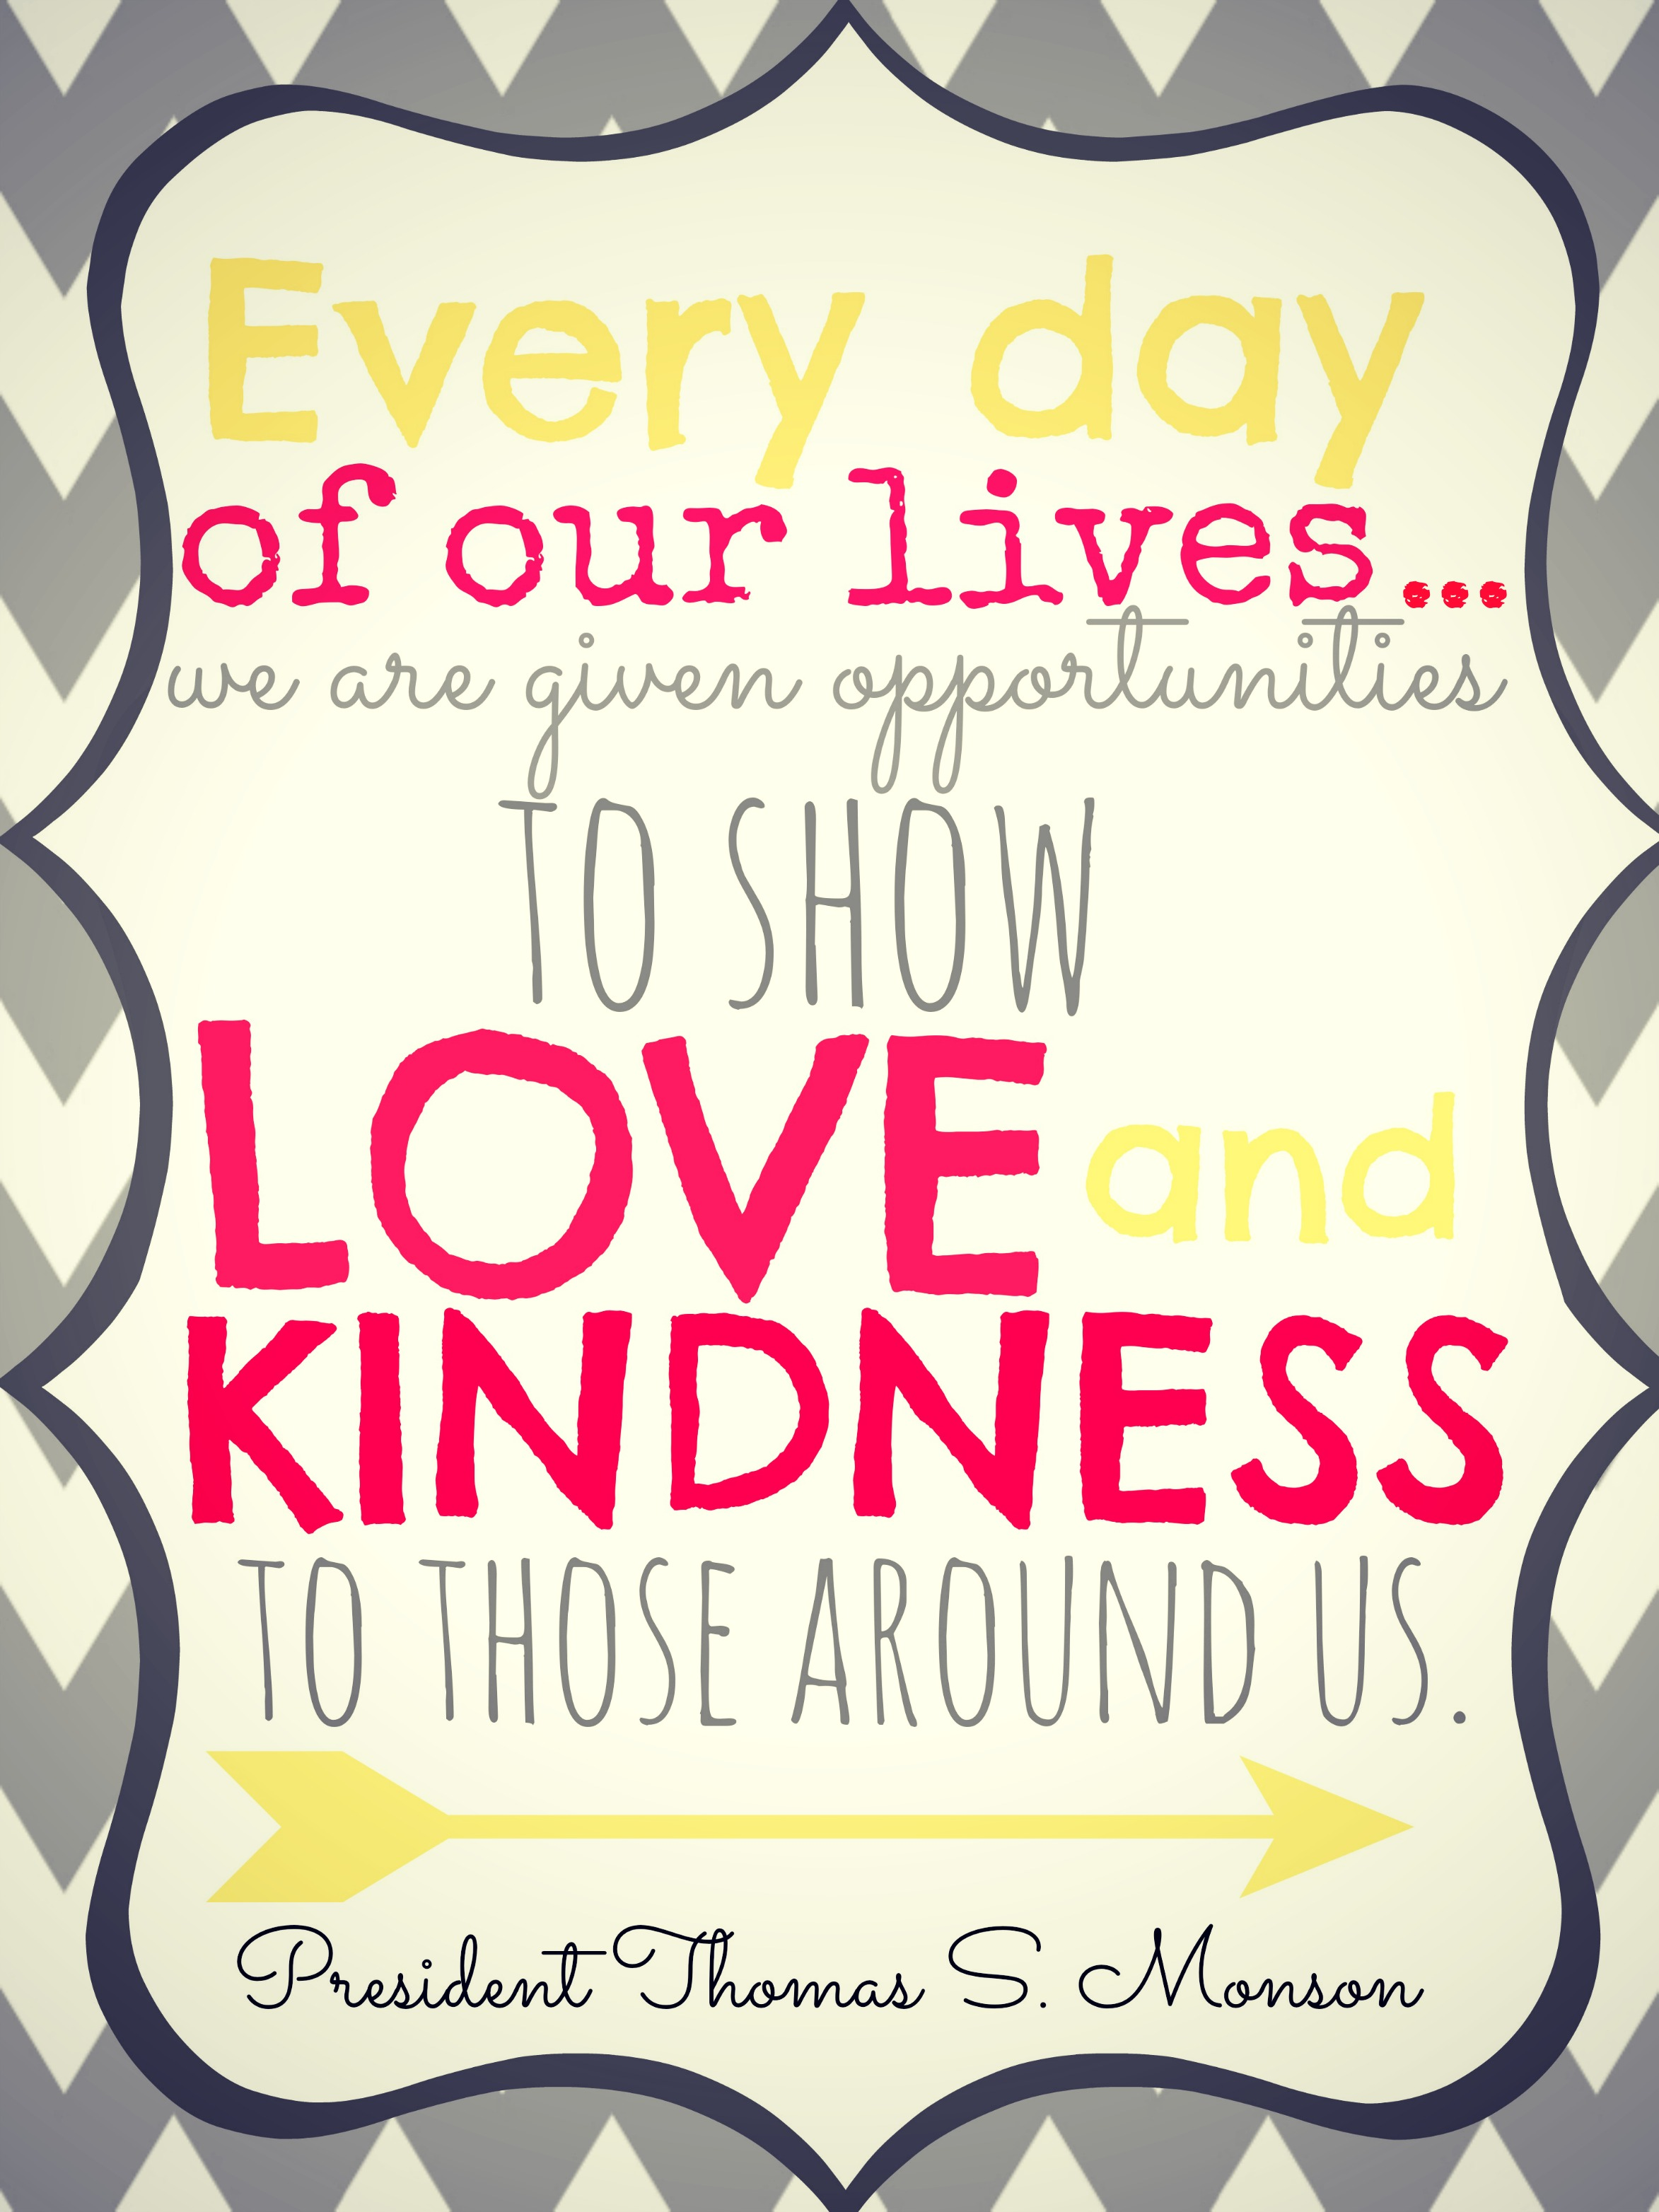 General Love Quotes Unique Lds General Conference 2014 Quotes  Today's The Best Day